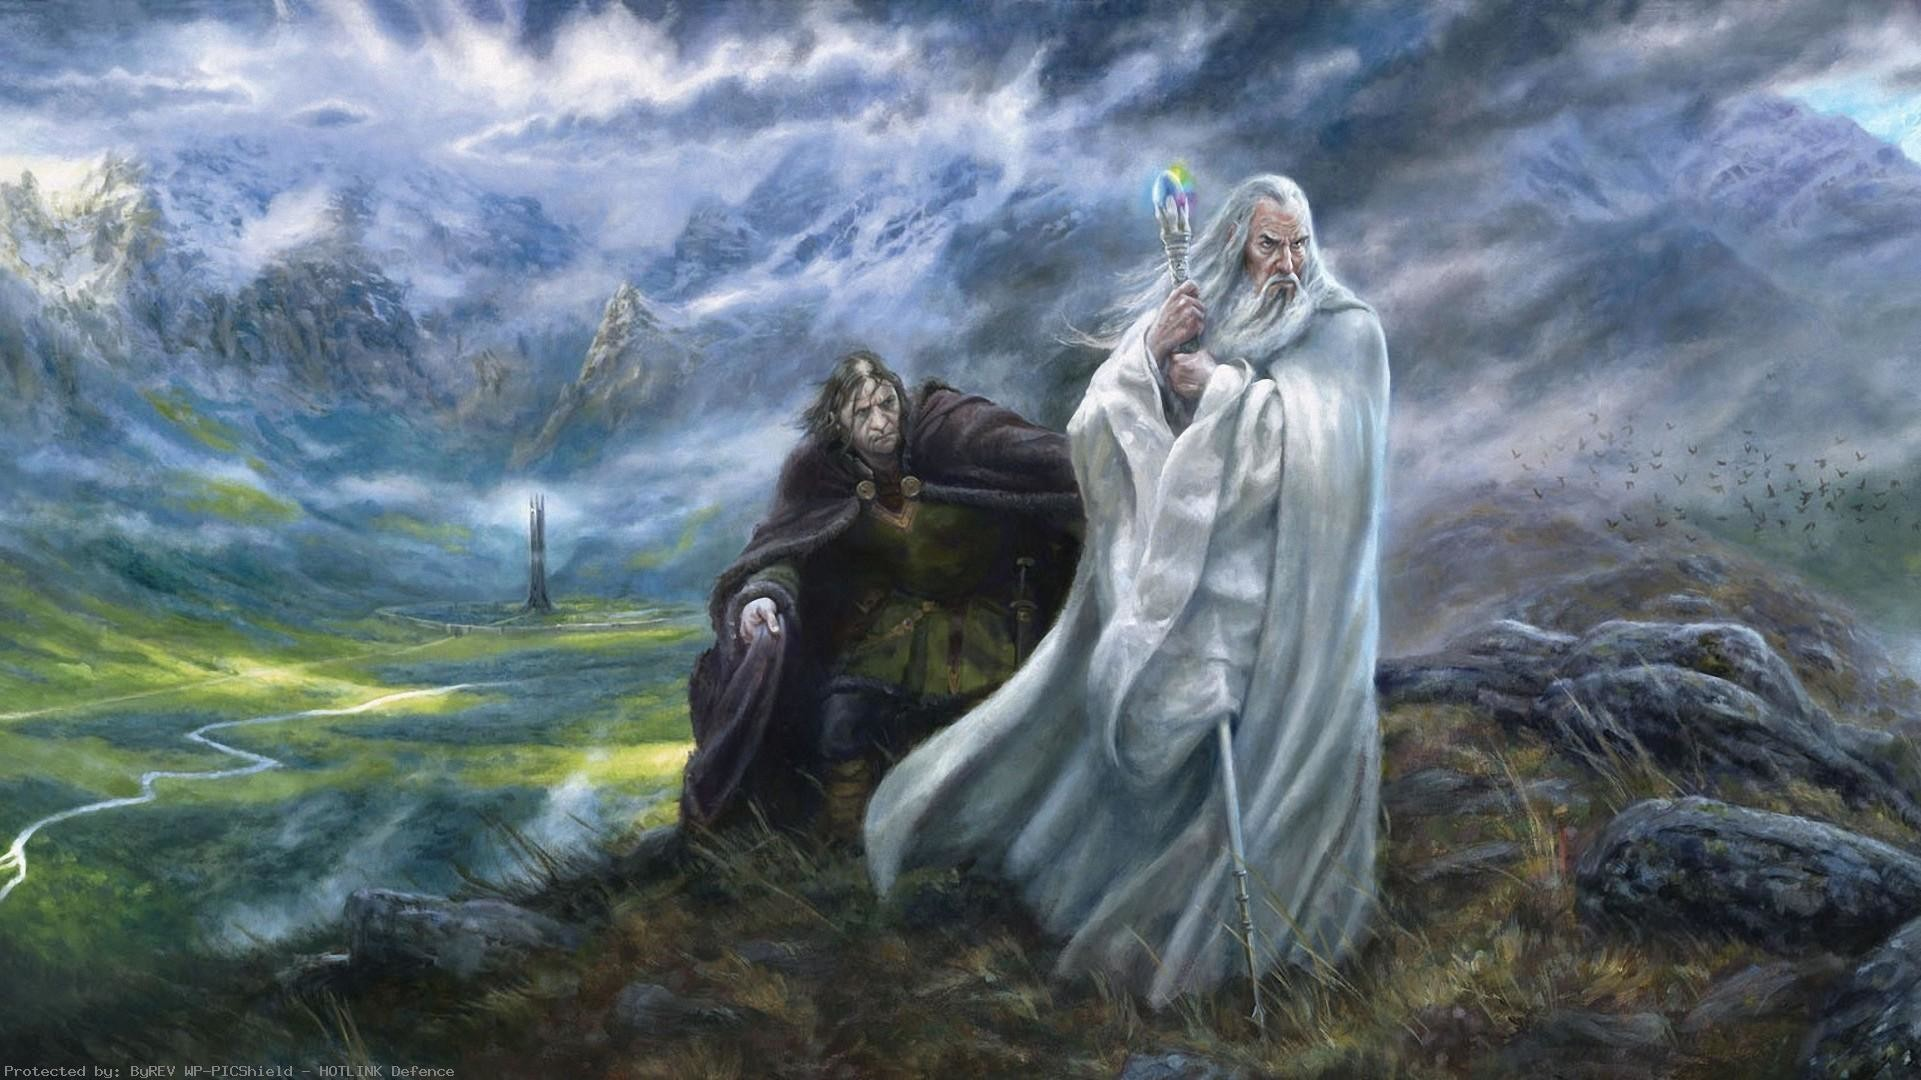 Movie-The-Lord-Of-The-Rings-Saruman-LOTR-